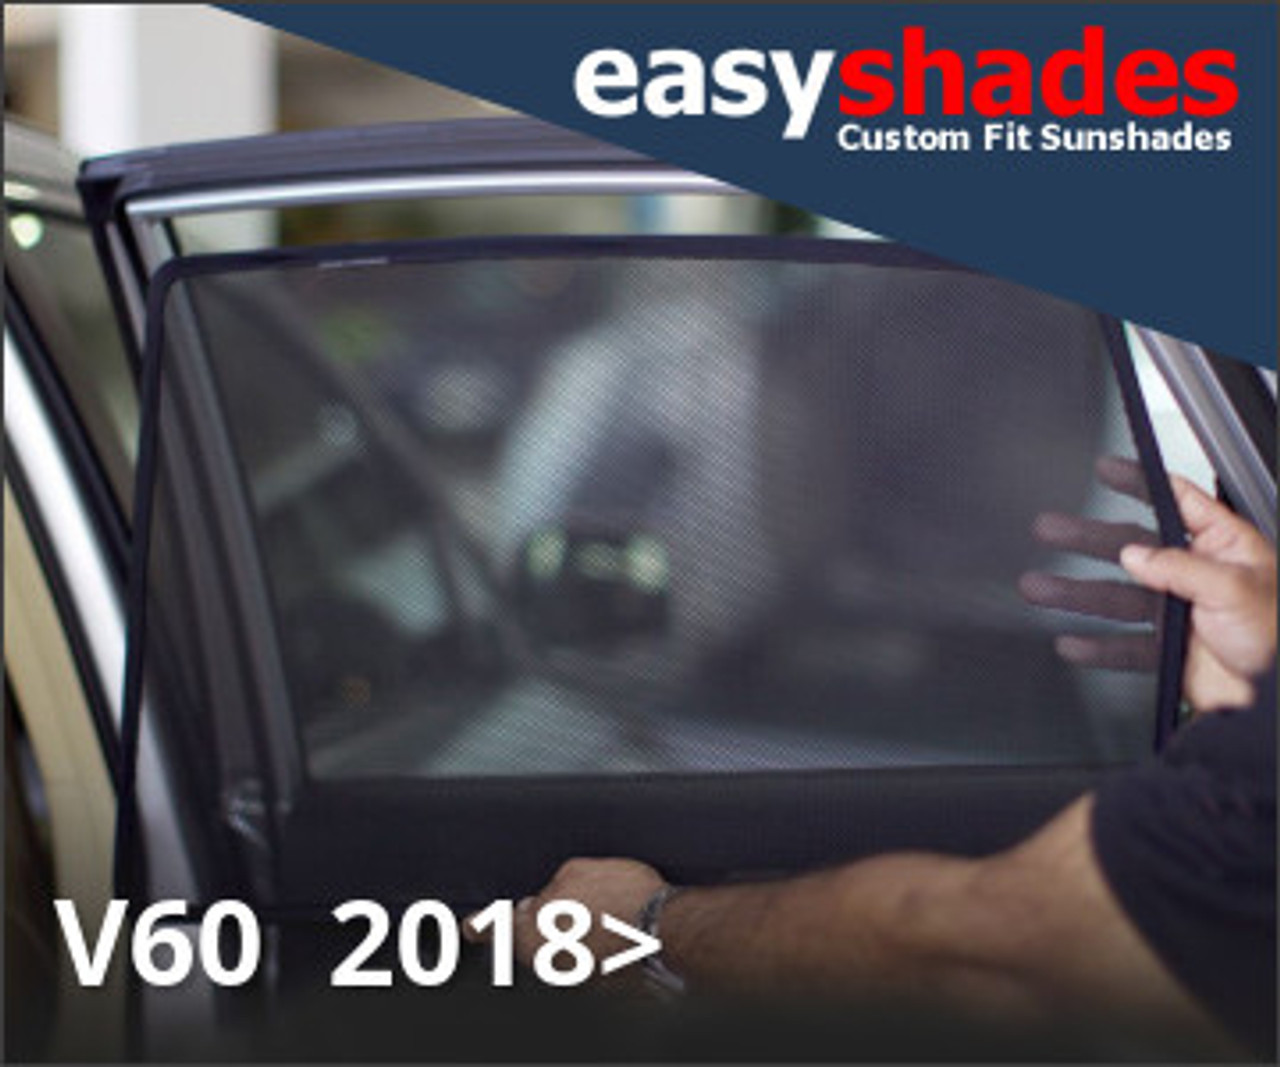 BMW X3 2010-18 CAR SUN SHADES WINDOW DOOR SHADES SET OF 2 B EASYSHADES UV TINT